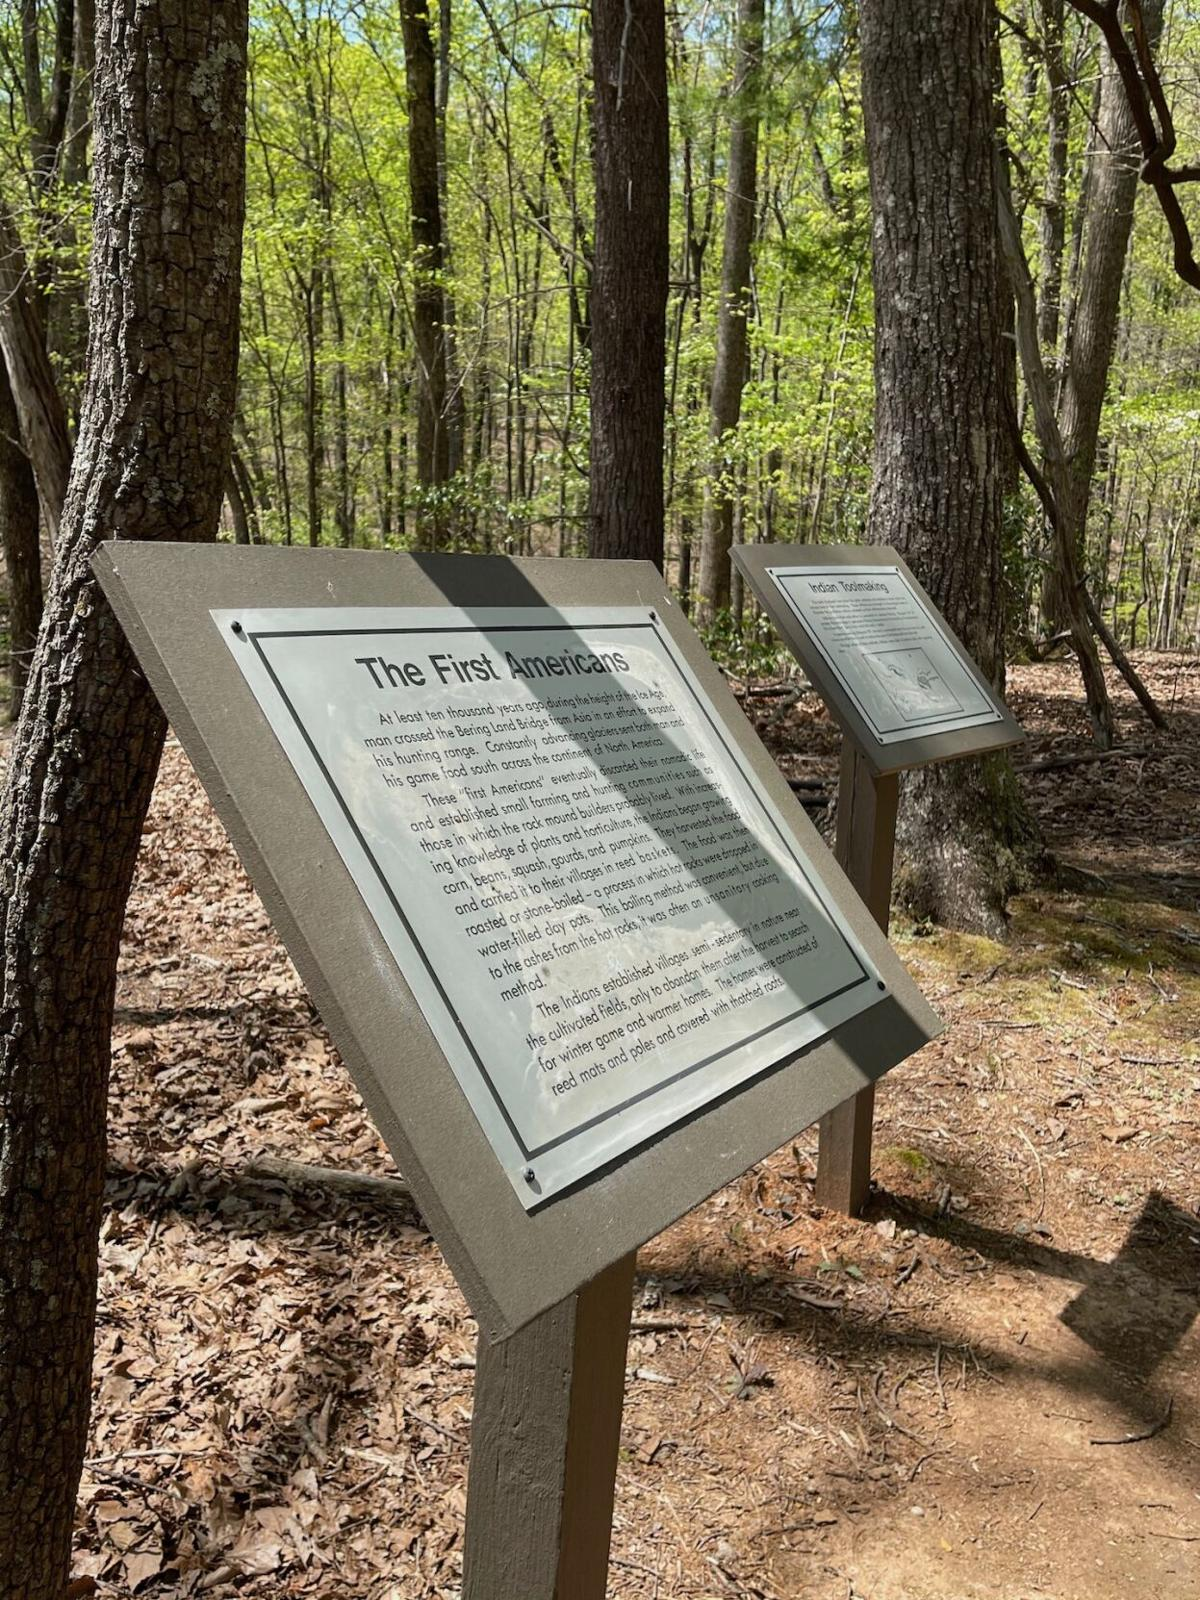 Informative signs were cleaned and restored by the Trails Committee.